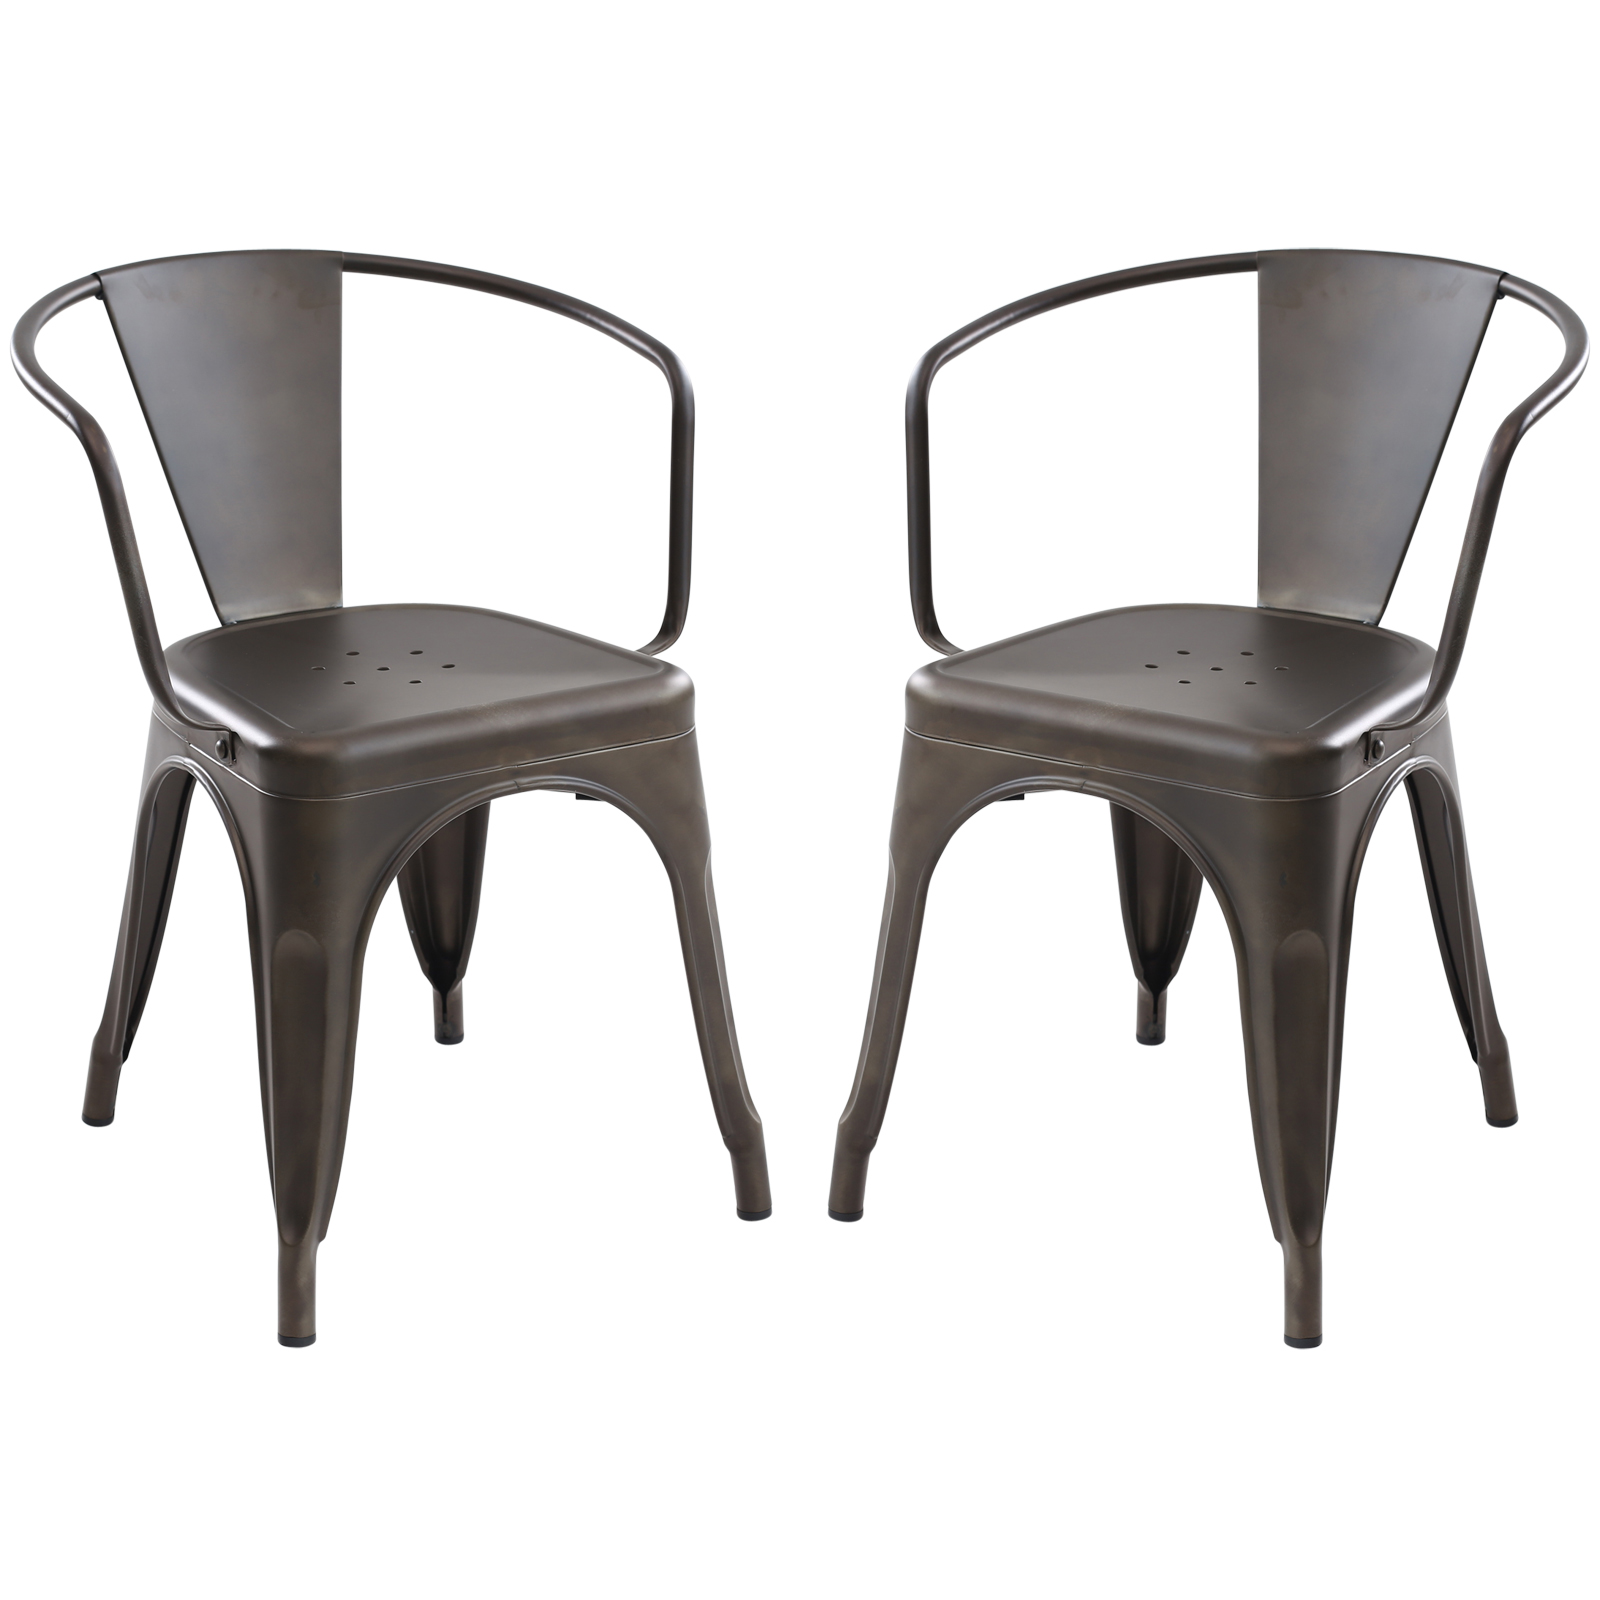 Poly and Bark Trattoria Arm Chair in Bronze (Set of 2)